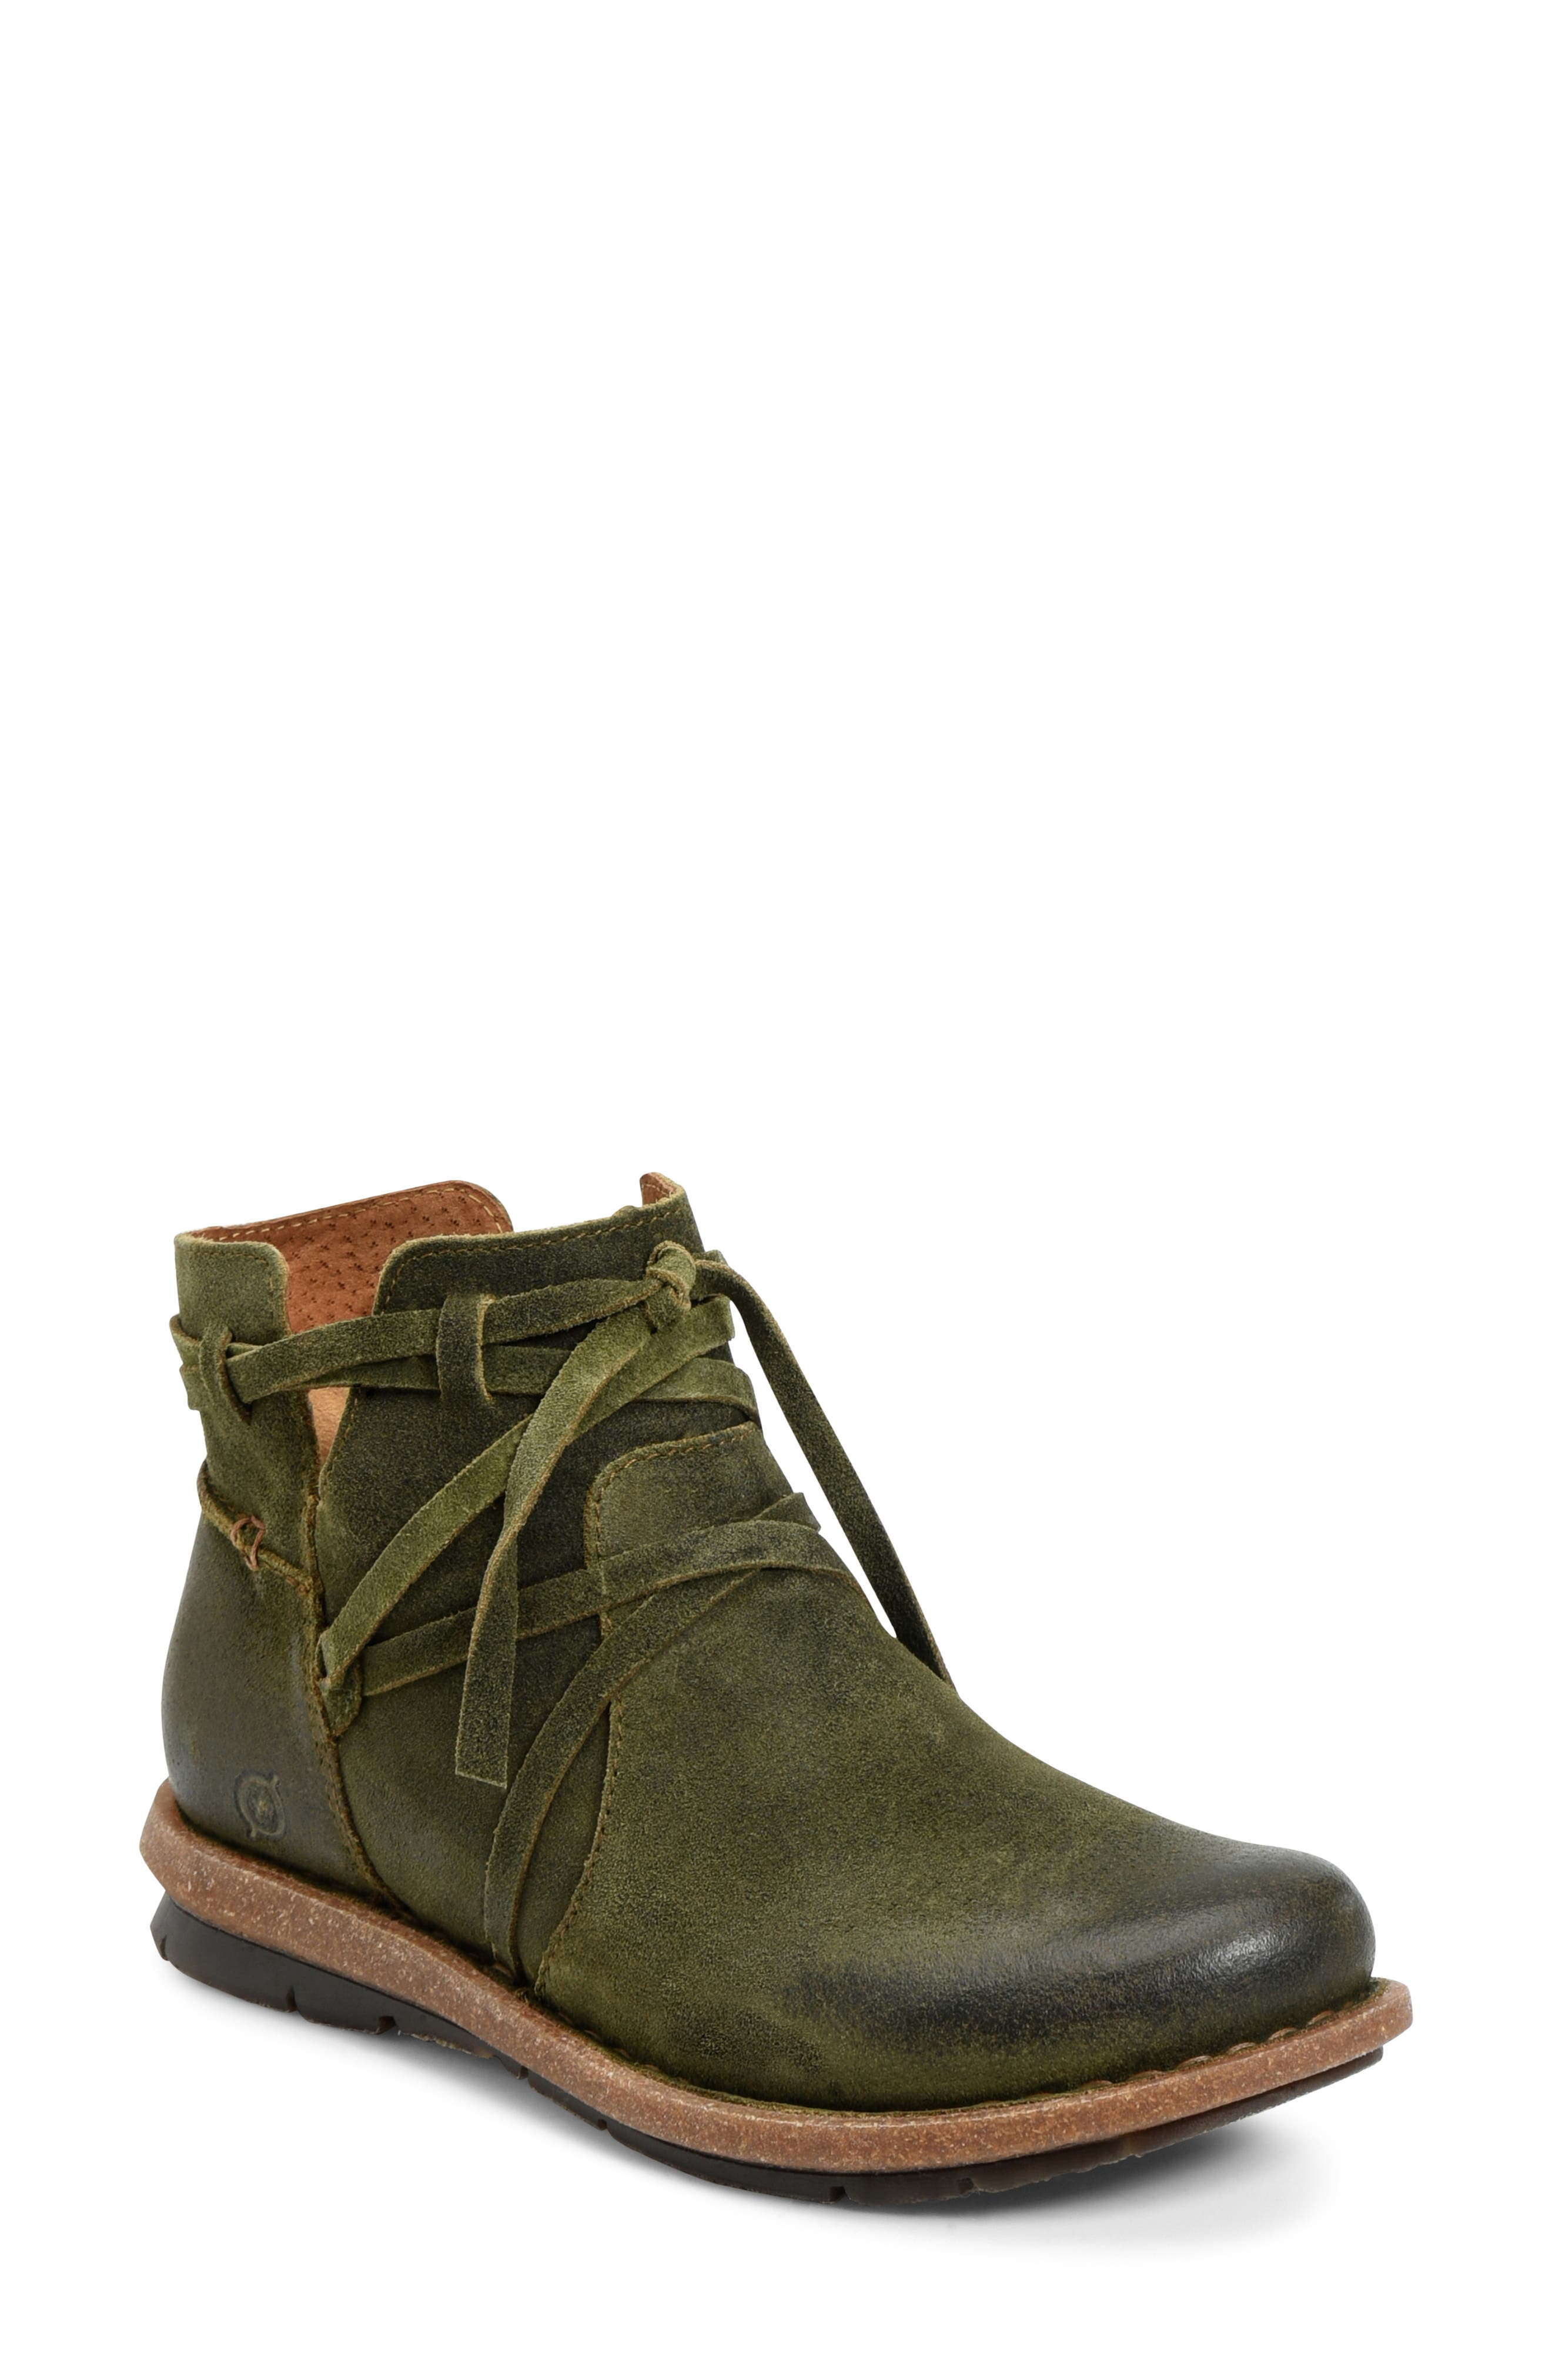 Women's Green Booties \u0026 Ankle Boots